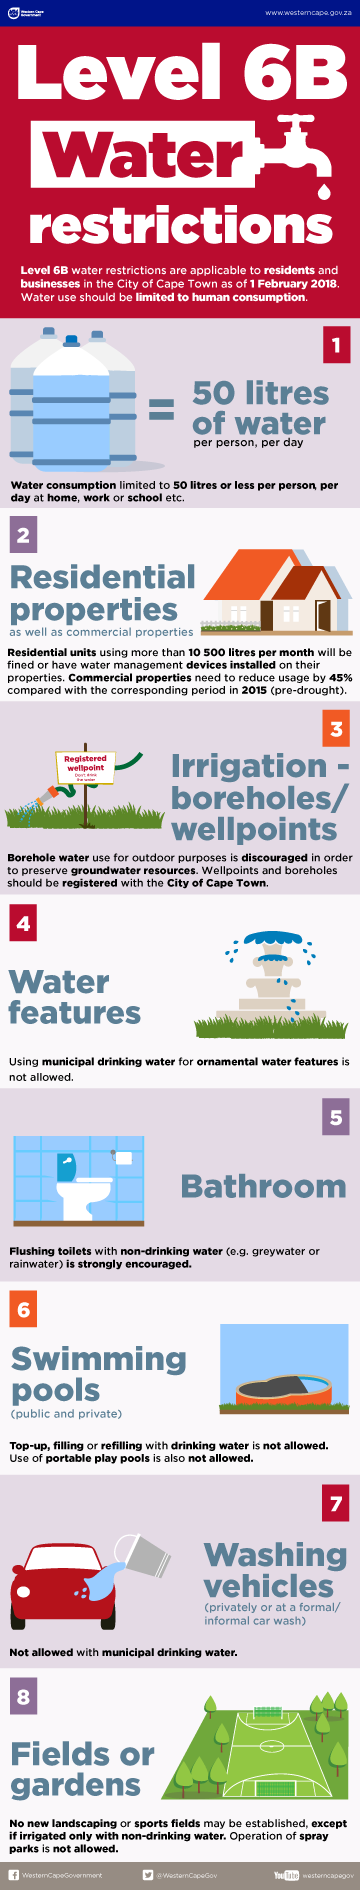 level_6b_water_restrictions